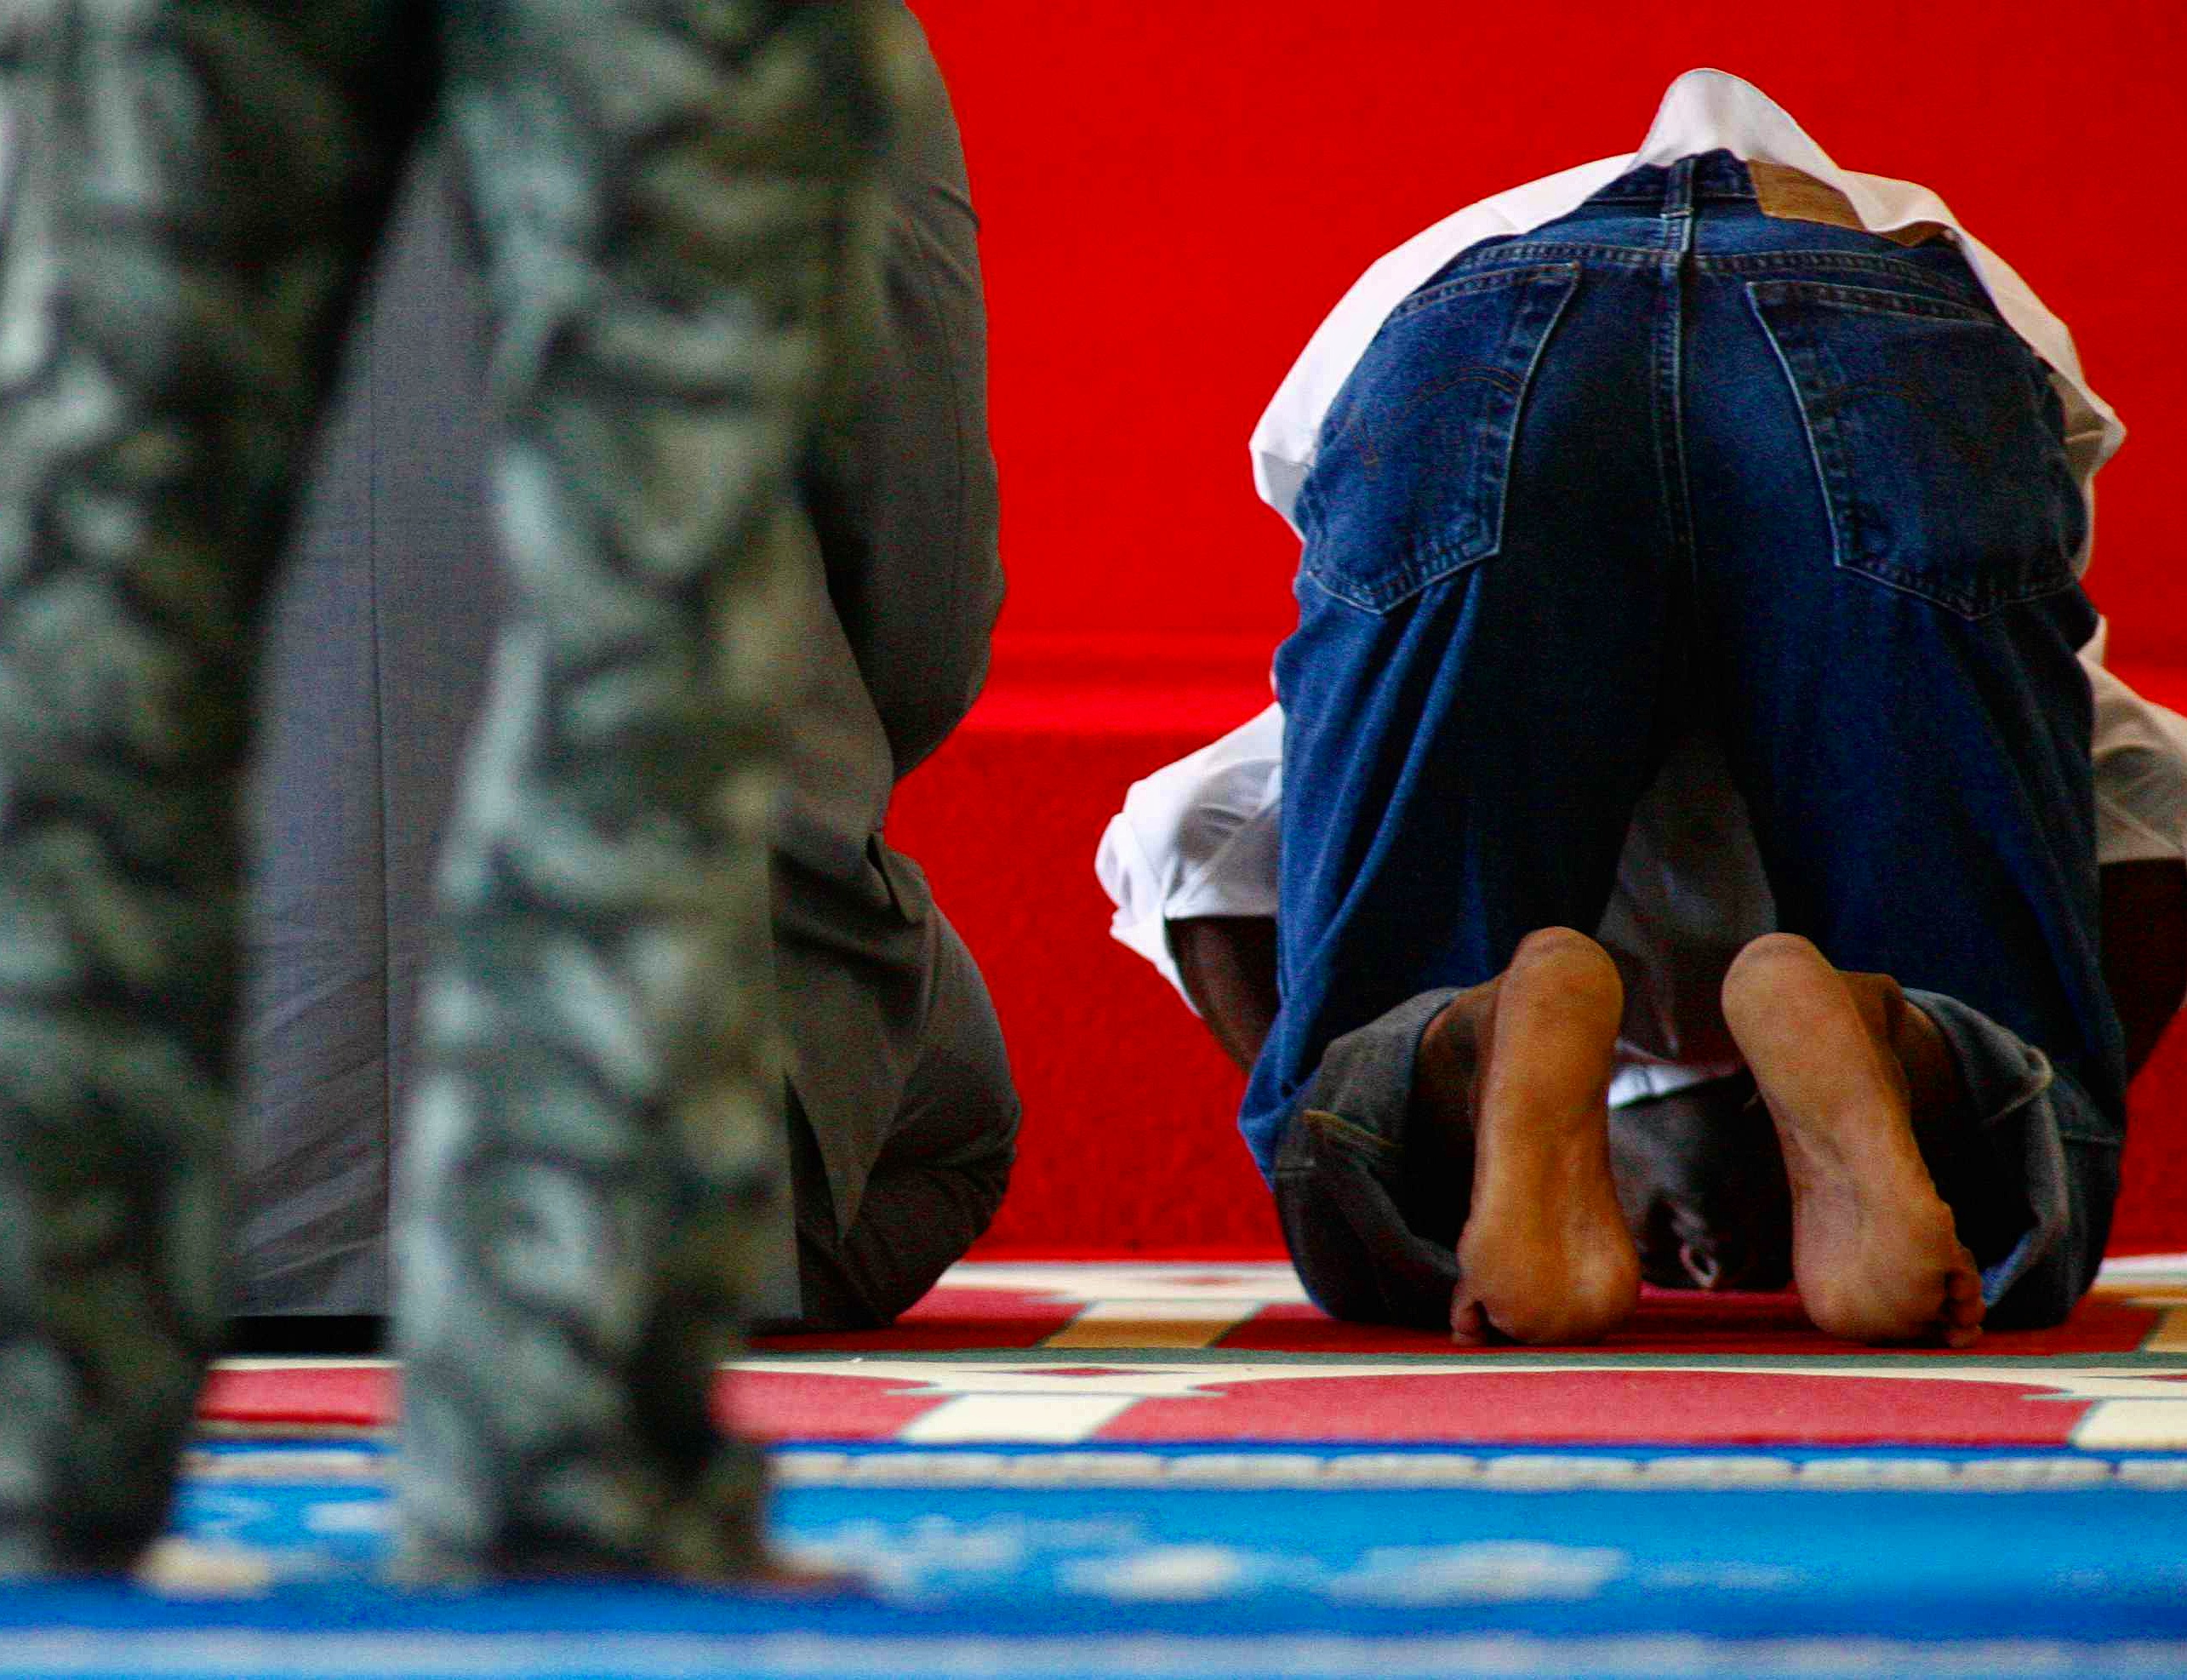 """""""007"""" in a mosque during prayer time"""